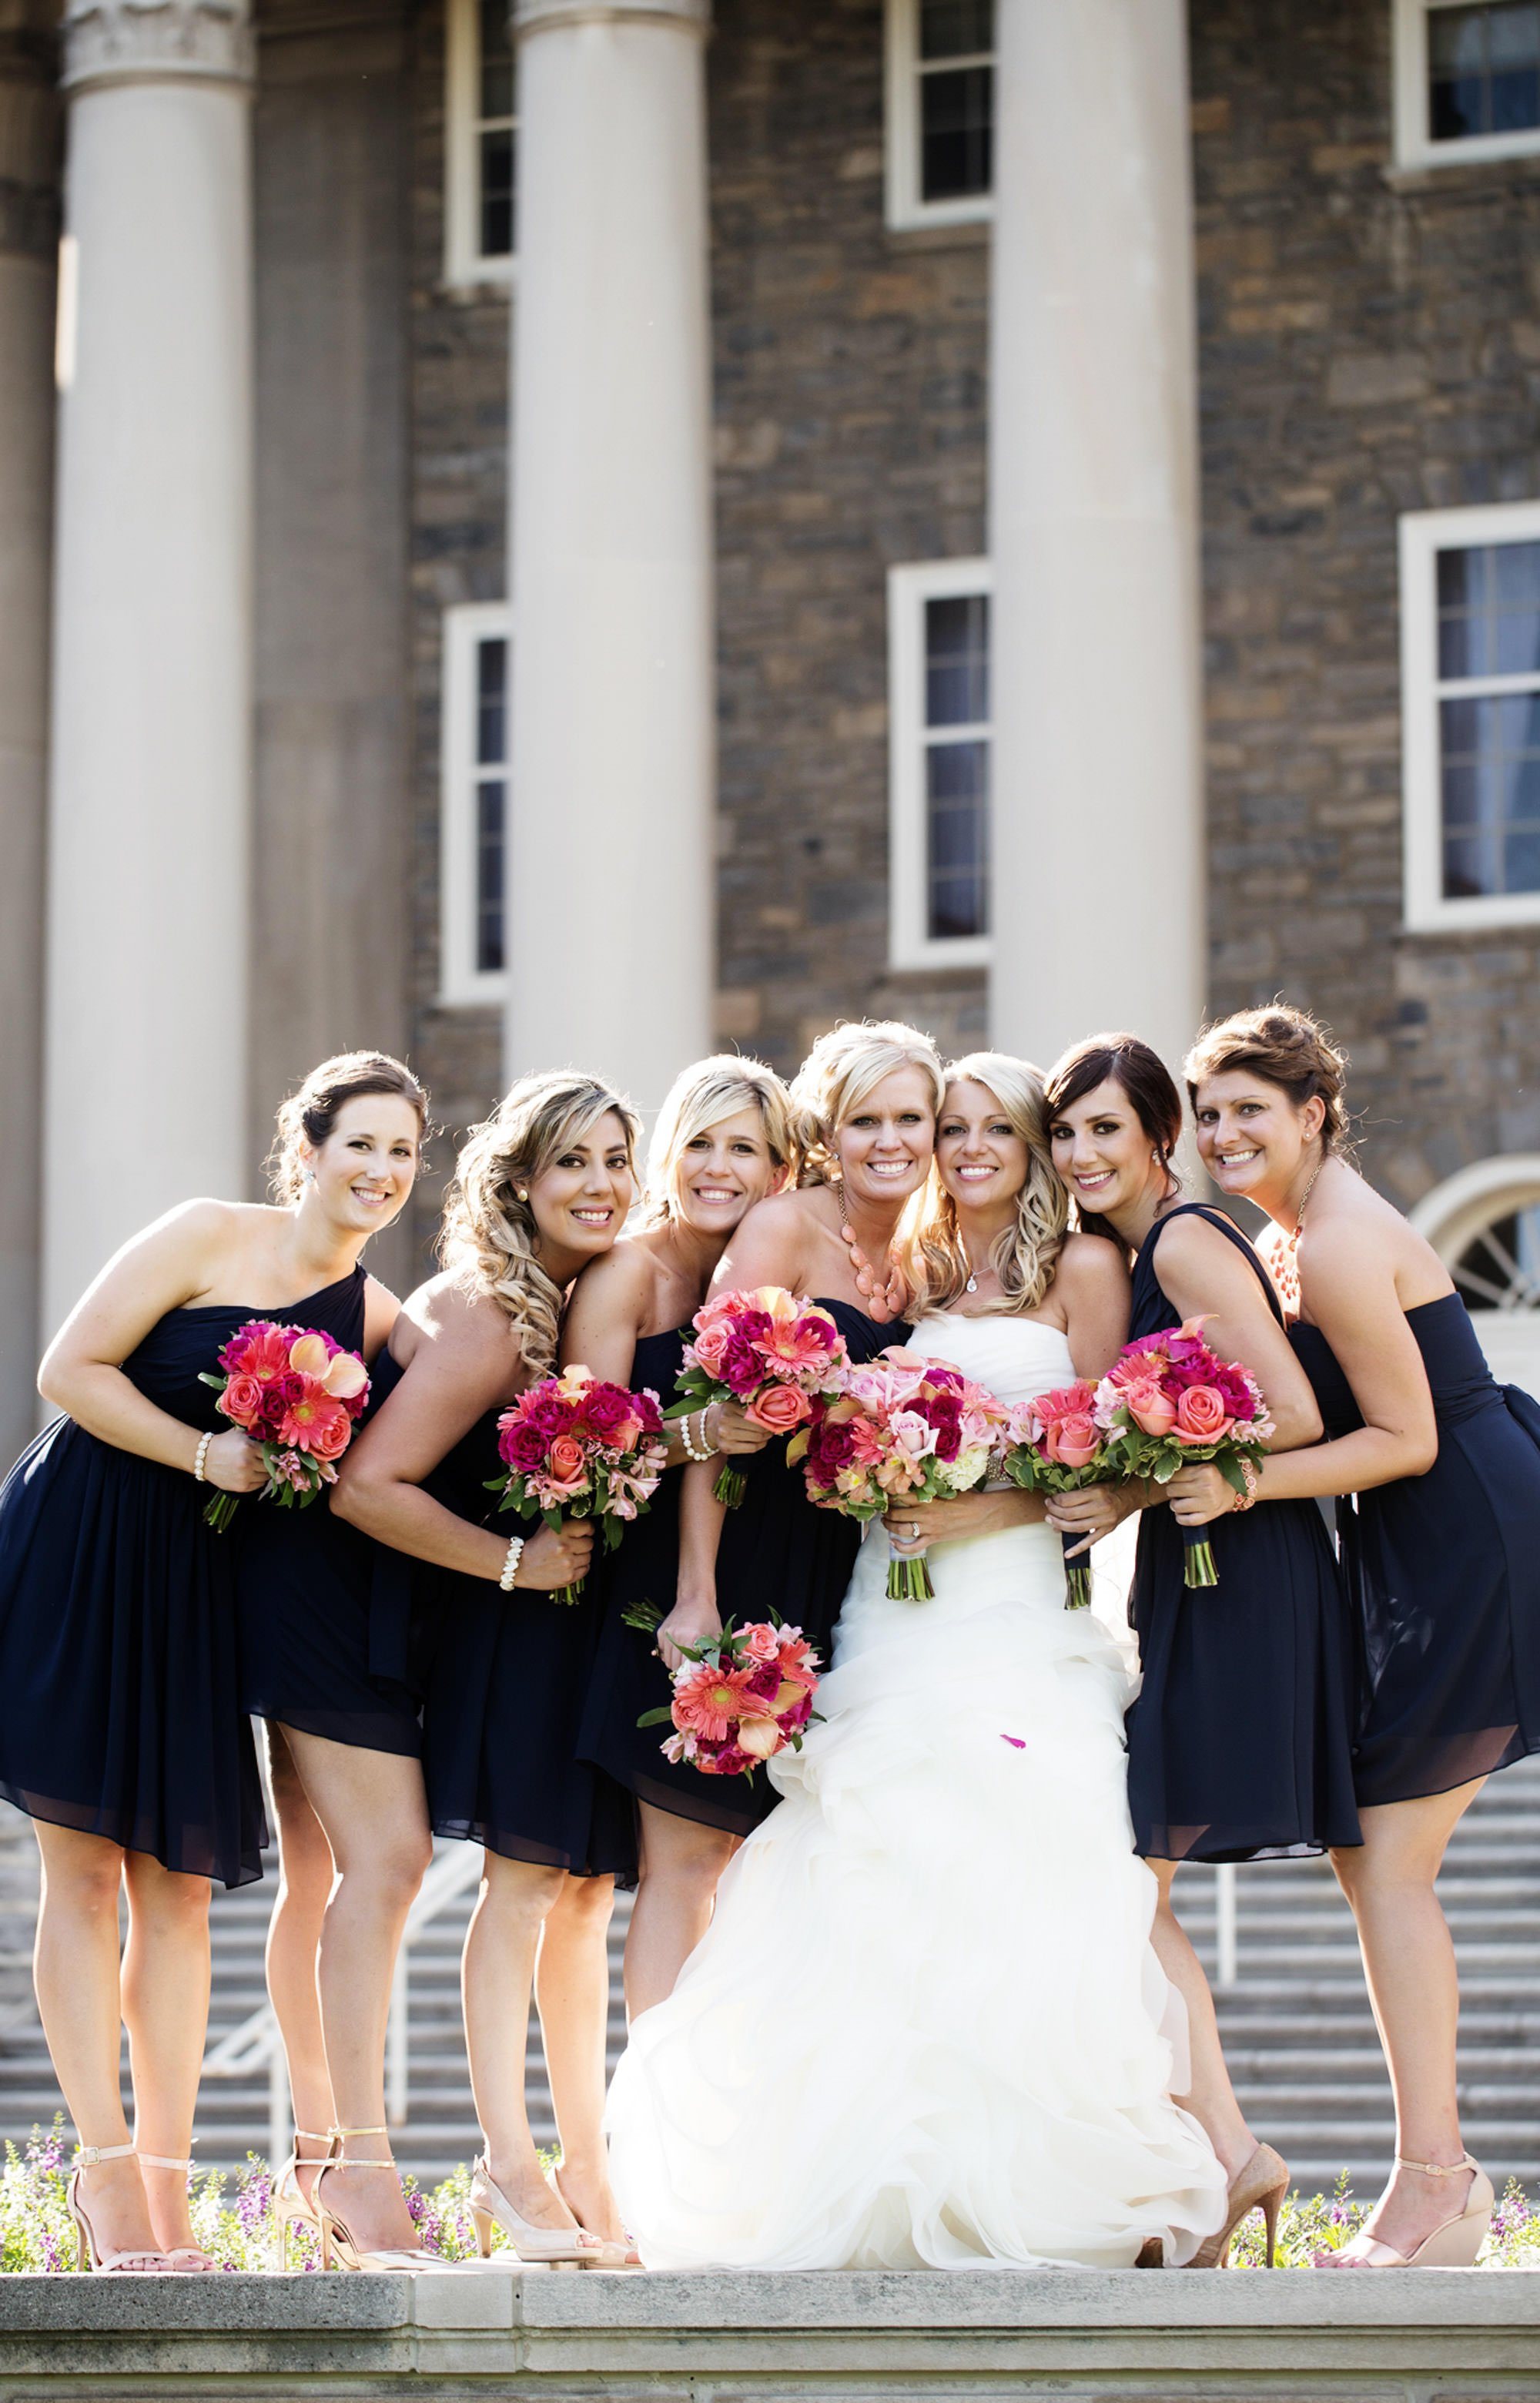 The bridal party poses on the steps of Old Main on the Penn State University campus in State College.